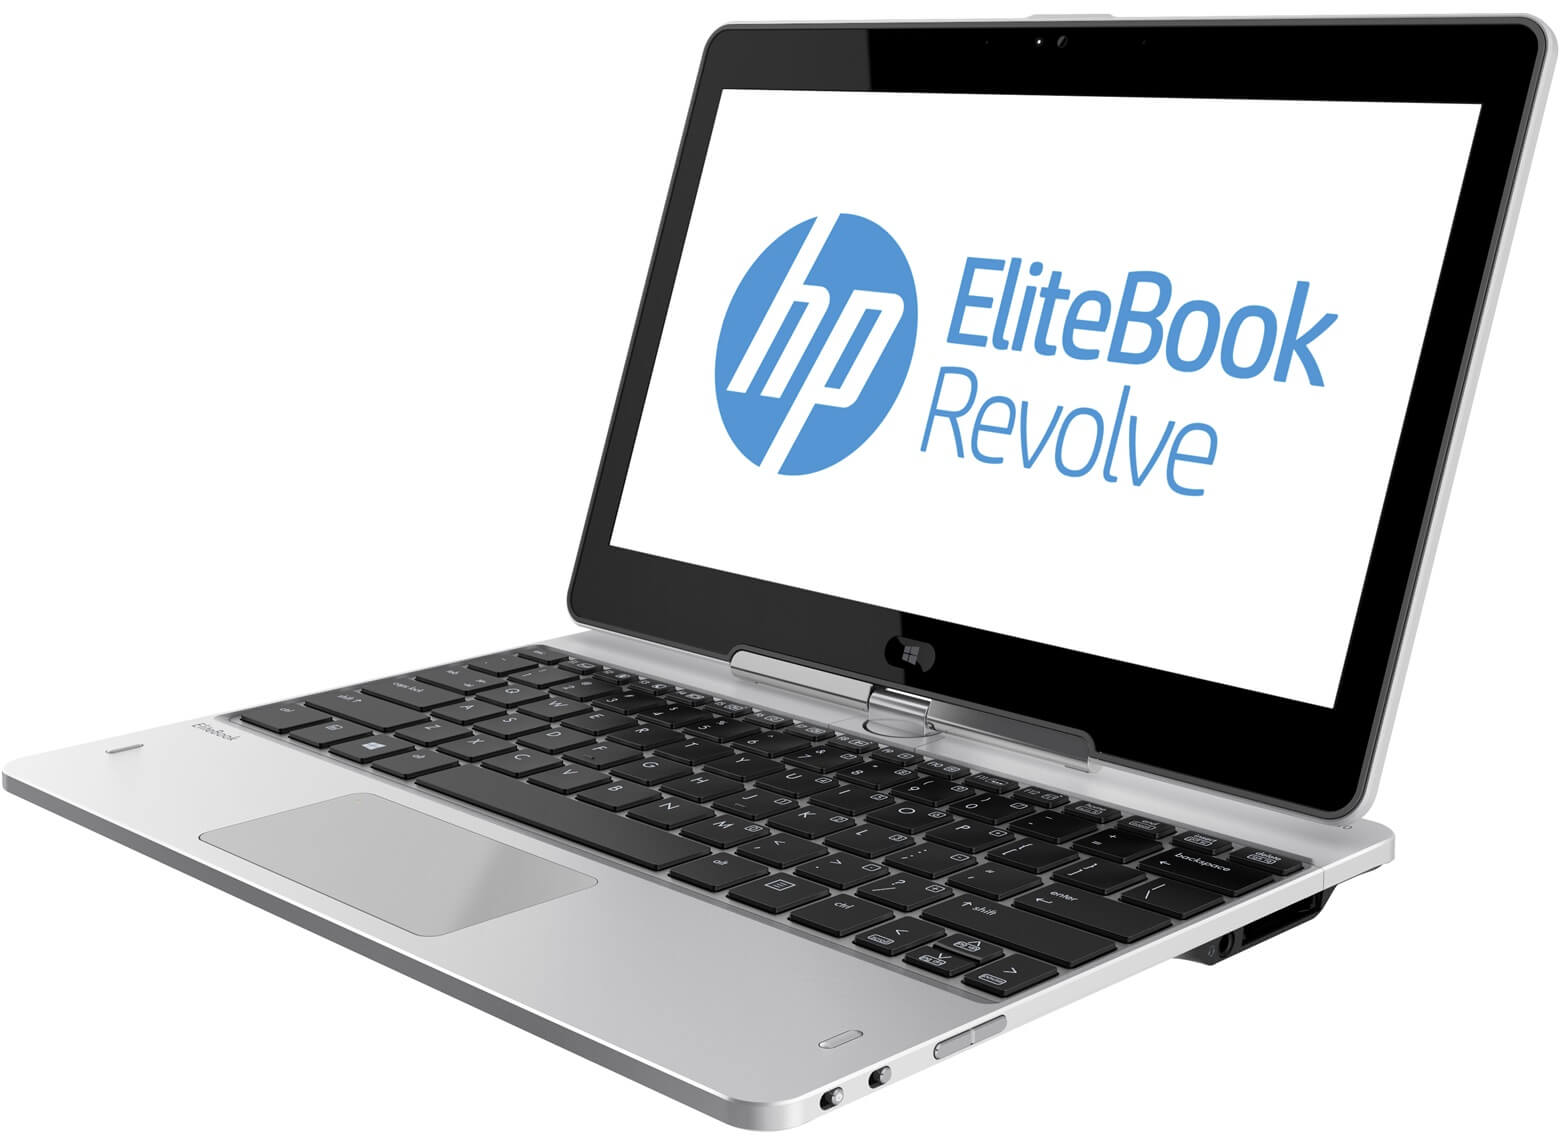 HP ELITEBOOK REVOLVE 810 G2 TABLET I5-4300U 1.9 / 8192MB DDR3L / 256GB SSD M.2 NOWY / SYSTEM WINDOWS 10 REFURBISHED PL / 11.6